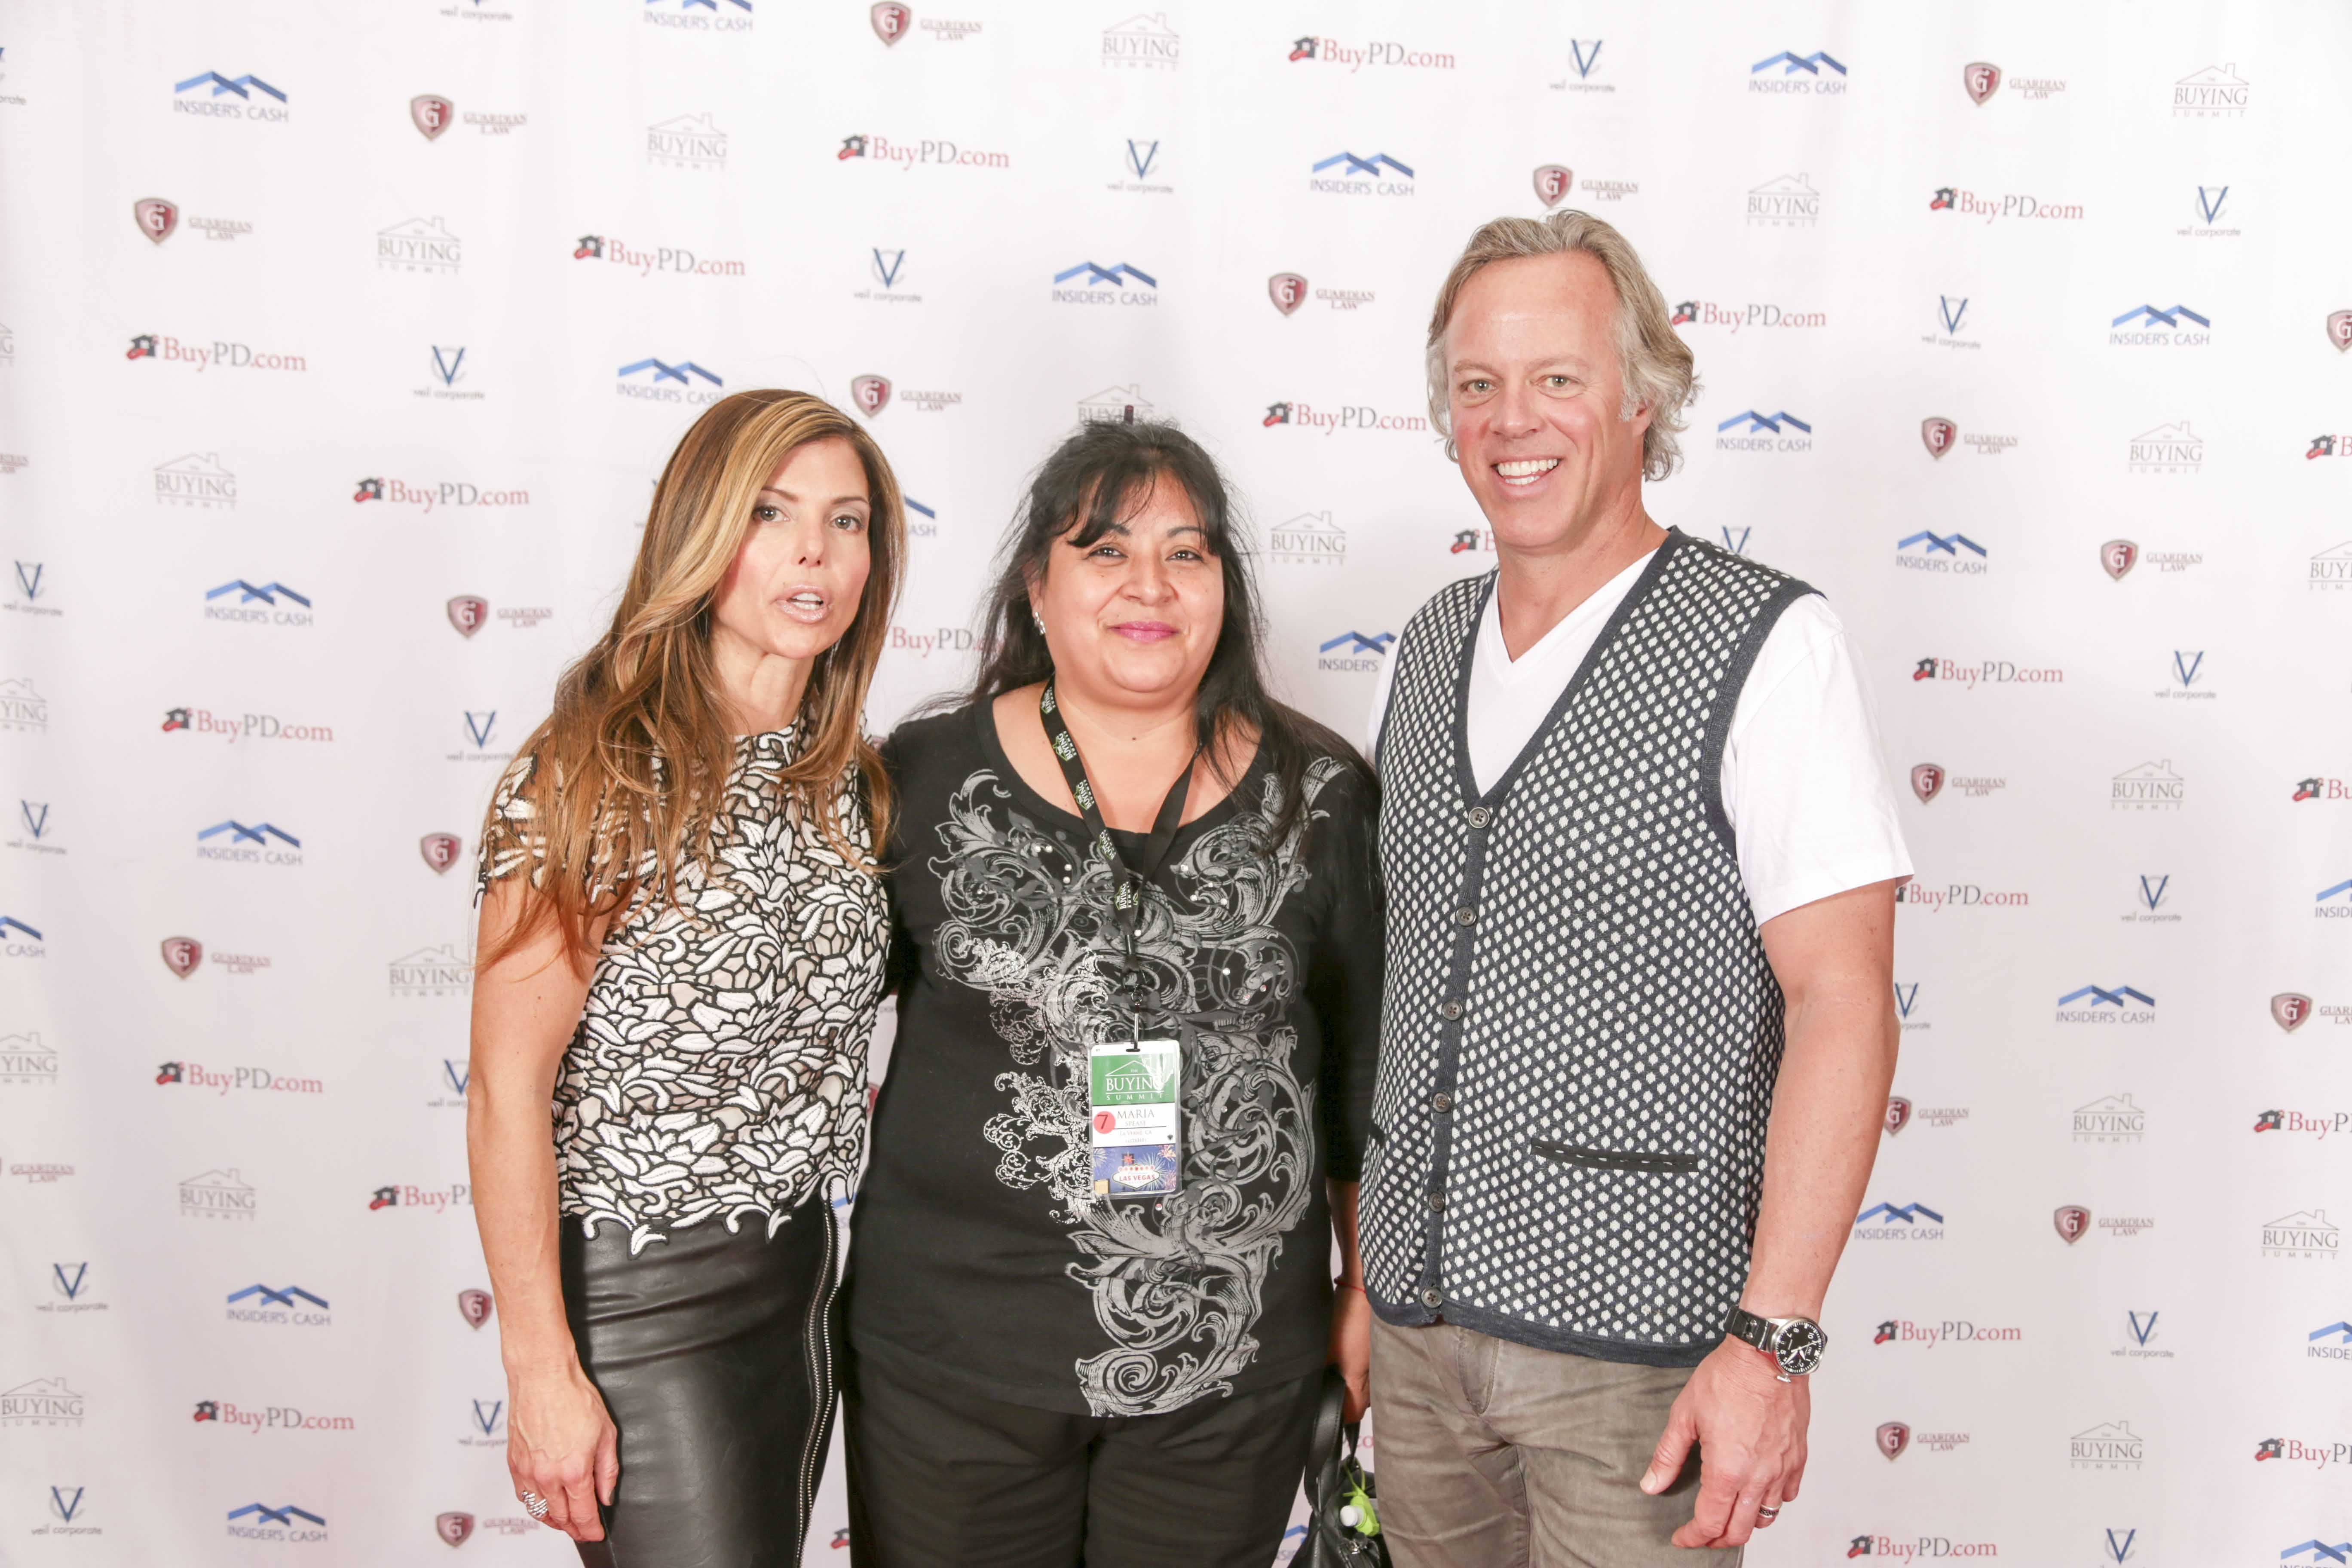 """Scott Yancey BiggerPockets – """"Have you been wondering how to deepen and enrich your life? Have you ever considered real estate? For me, real estate hasn't just brought me financial success, but peace of mind. Let me show you how much opportunity is available."""""""